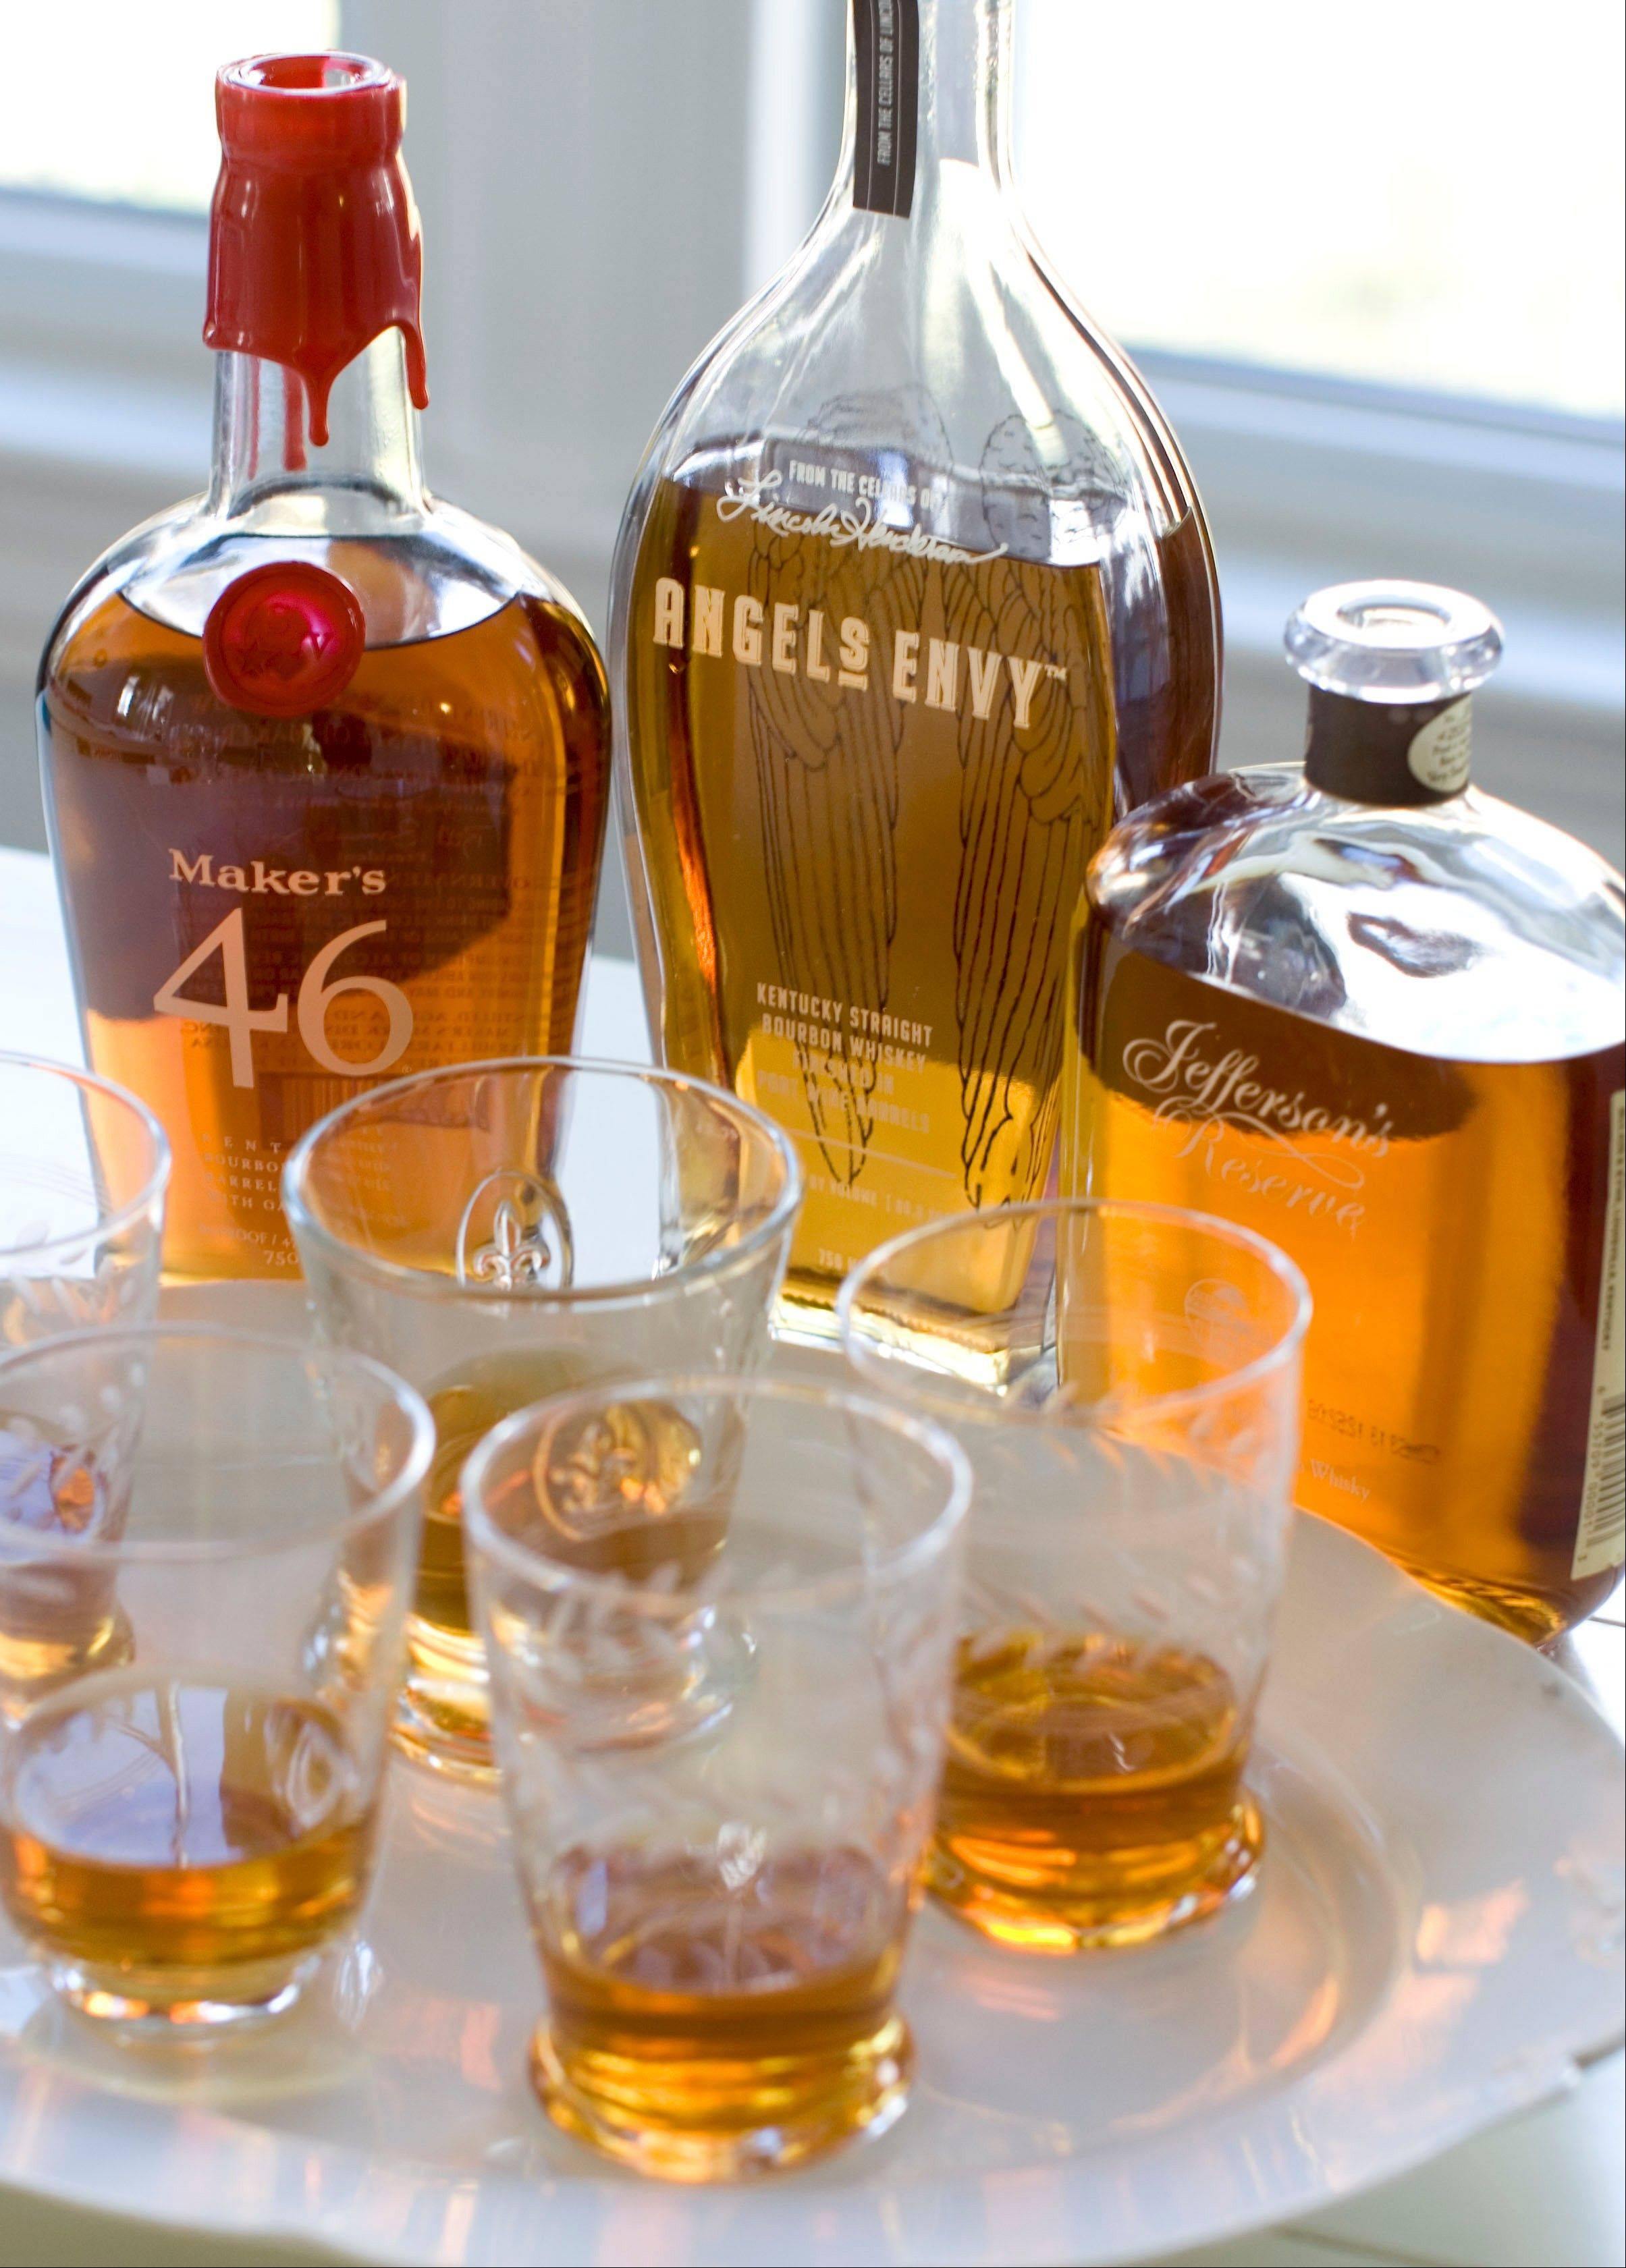 Picking a bourbon isn't the one-two-three choice it used to be. There's been a boom in brands and styles like Maker's 46, from left, Angels Envy and Jefferson's Reserve.